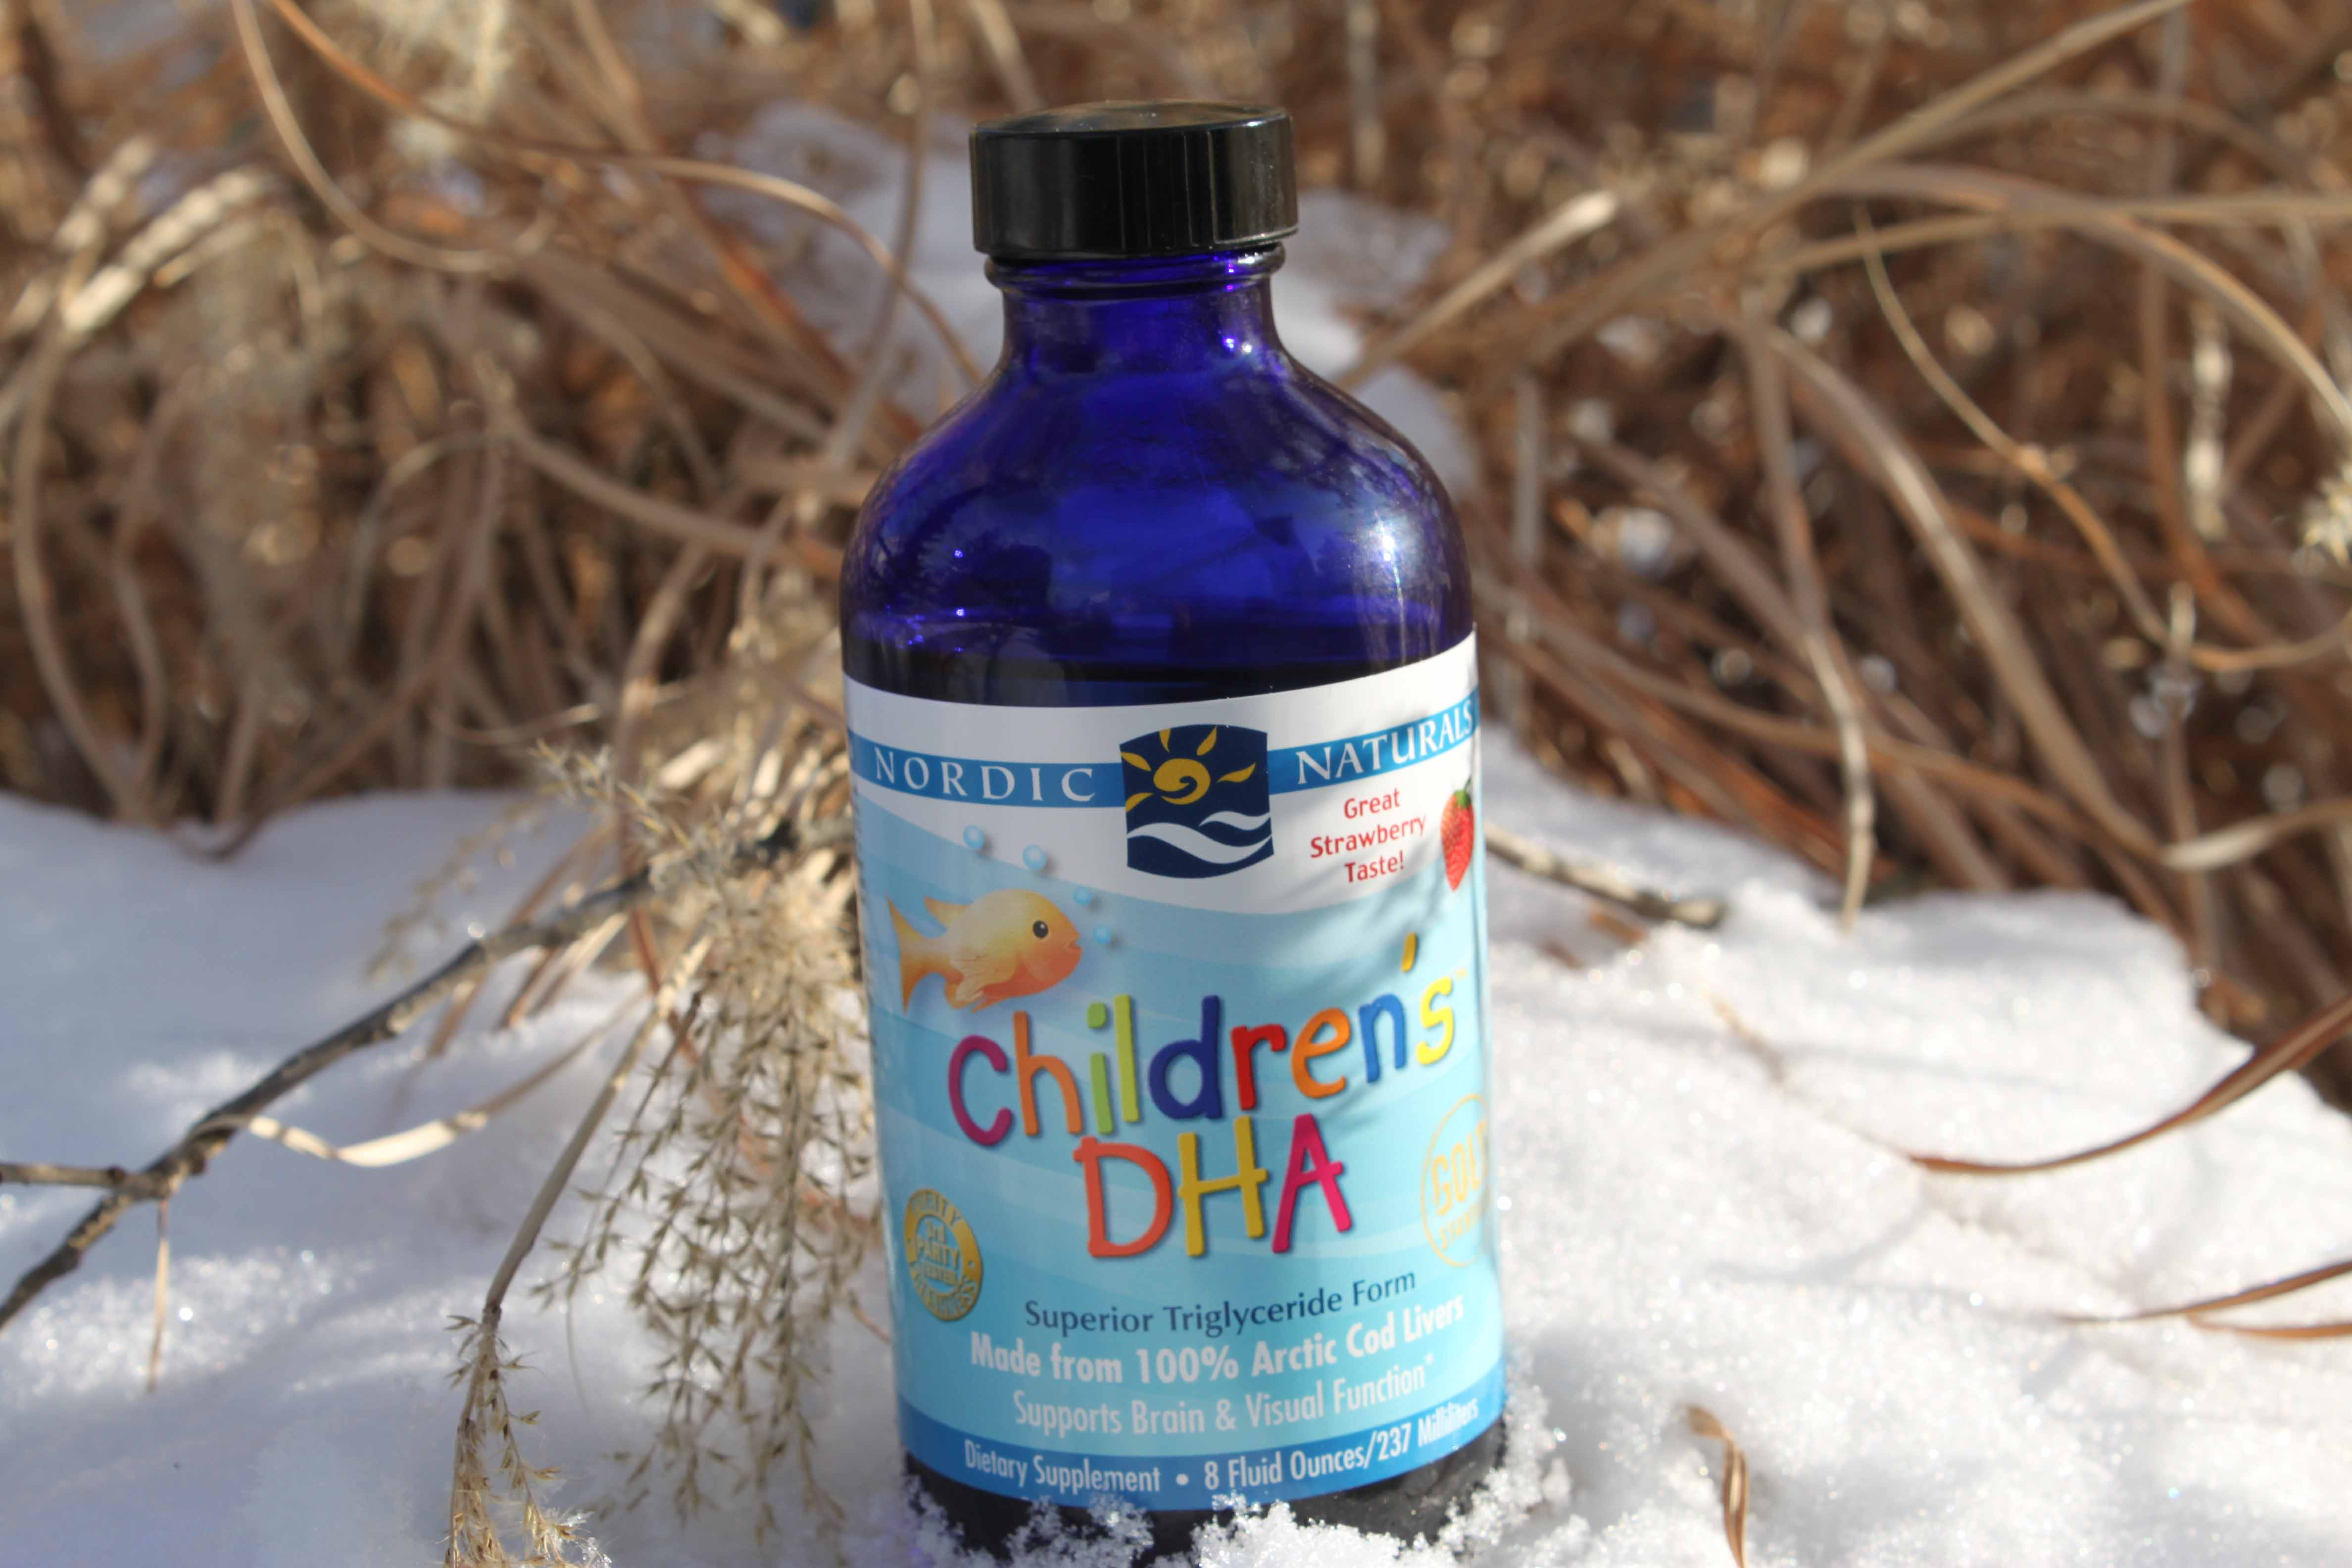 Product Review: Nordic Naturals Children's DHA